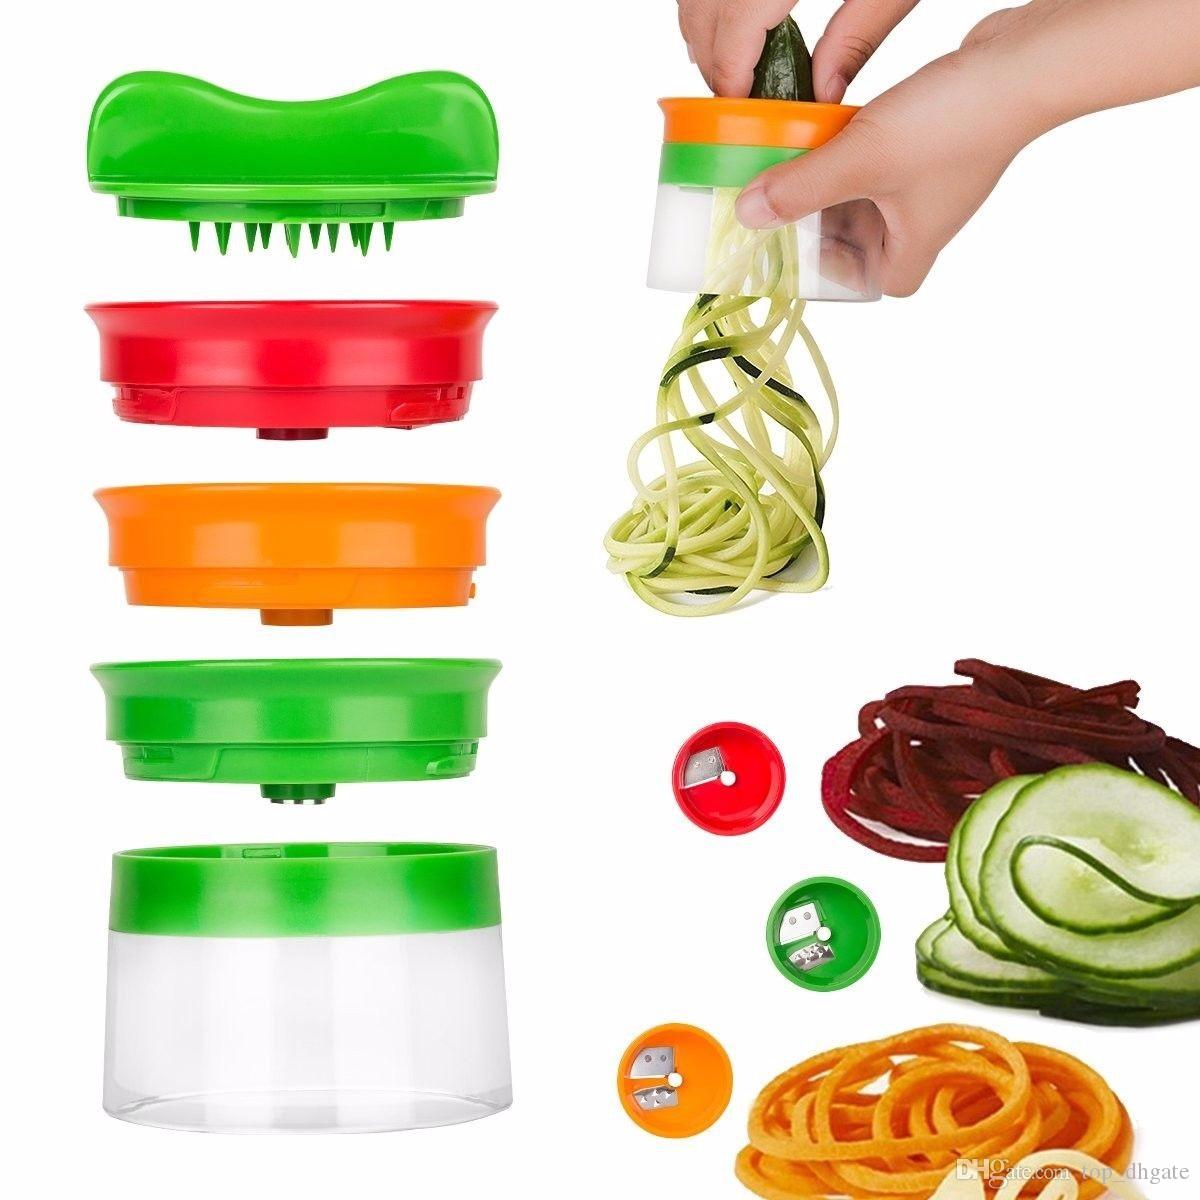 ew Vegetable Fruit Spiral Slicer Cutter Vegetable Spiralizer Grater Carrot Cucumber Courgette Zucchini Spaghetti Maker Dropship